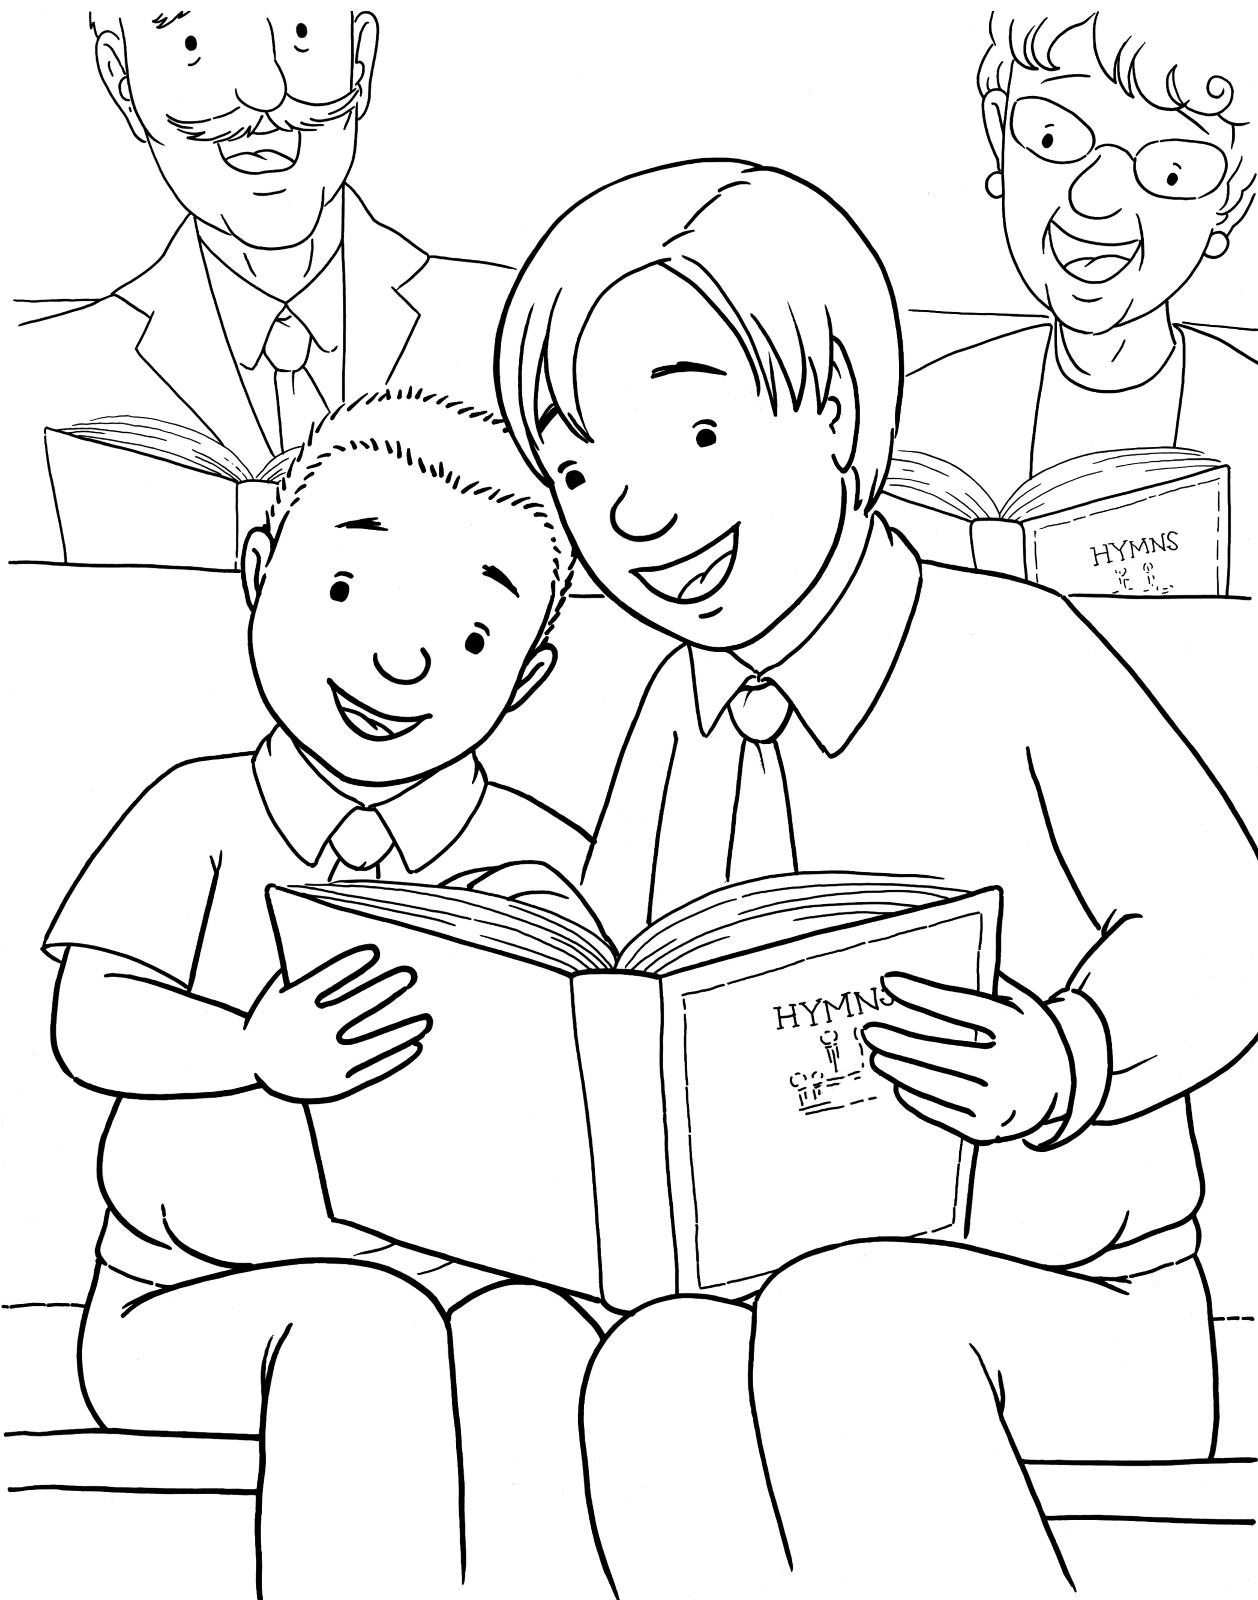 singing in church coloring pages-#4